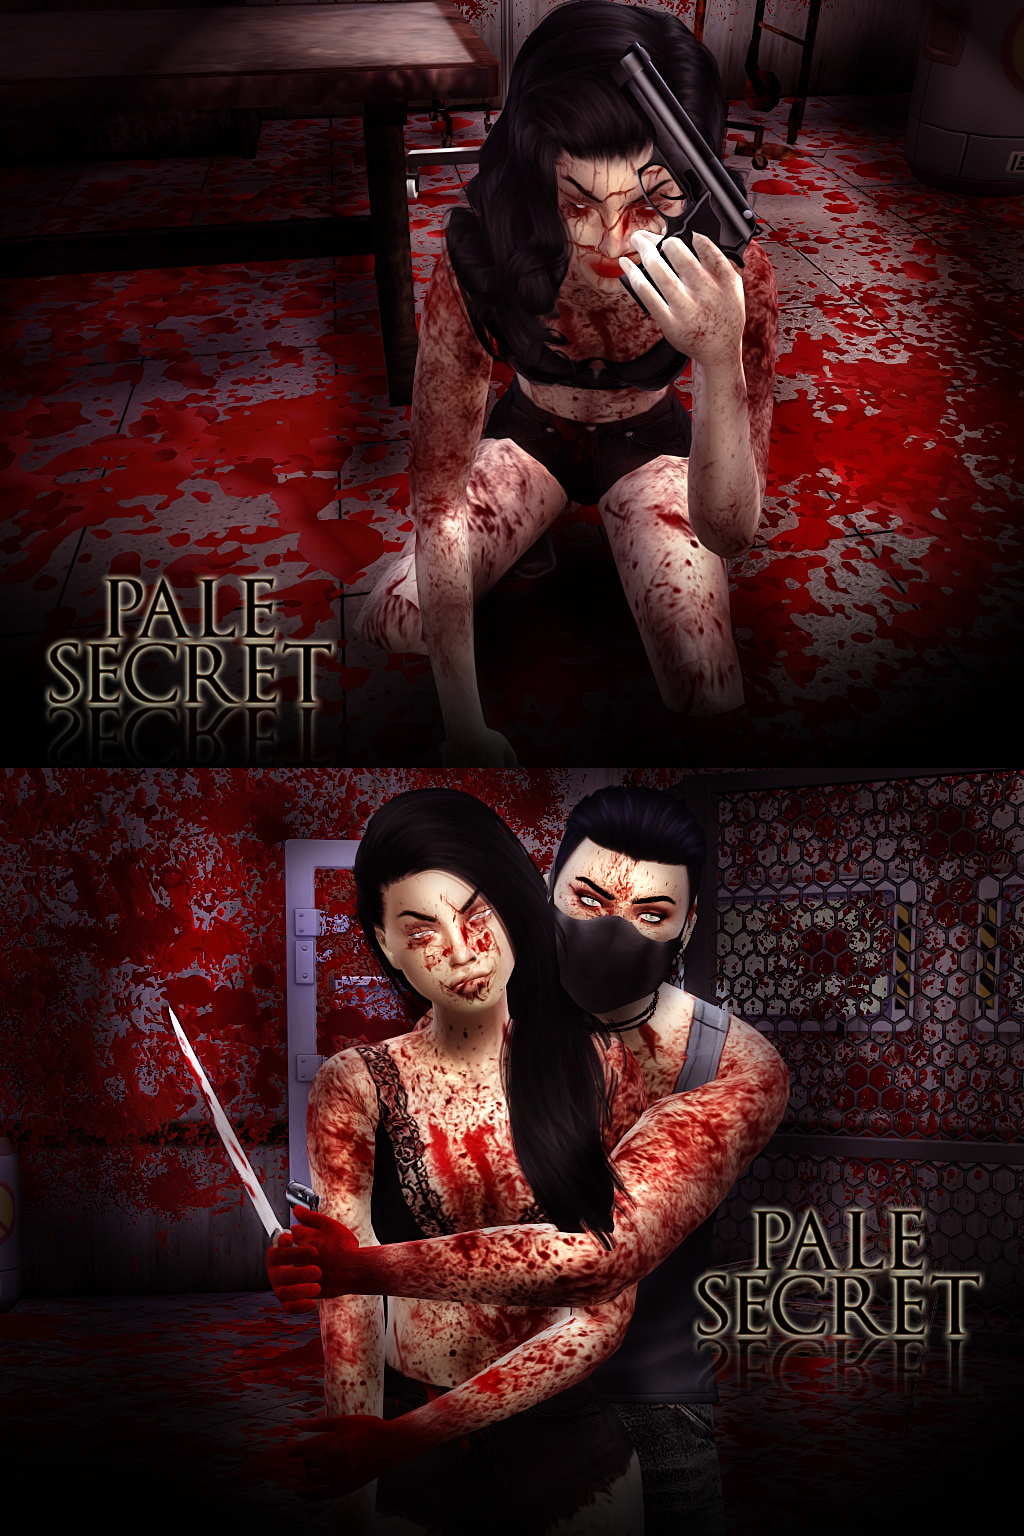 Sims 3 Teppiche Download Sims 4 Cc 39s The Best Bloody Makeup Eyes Rugs And Walls